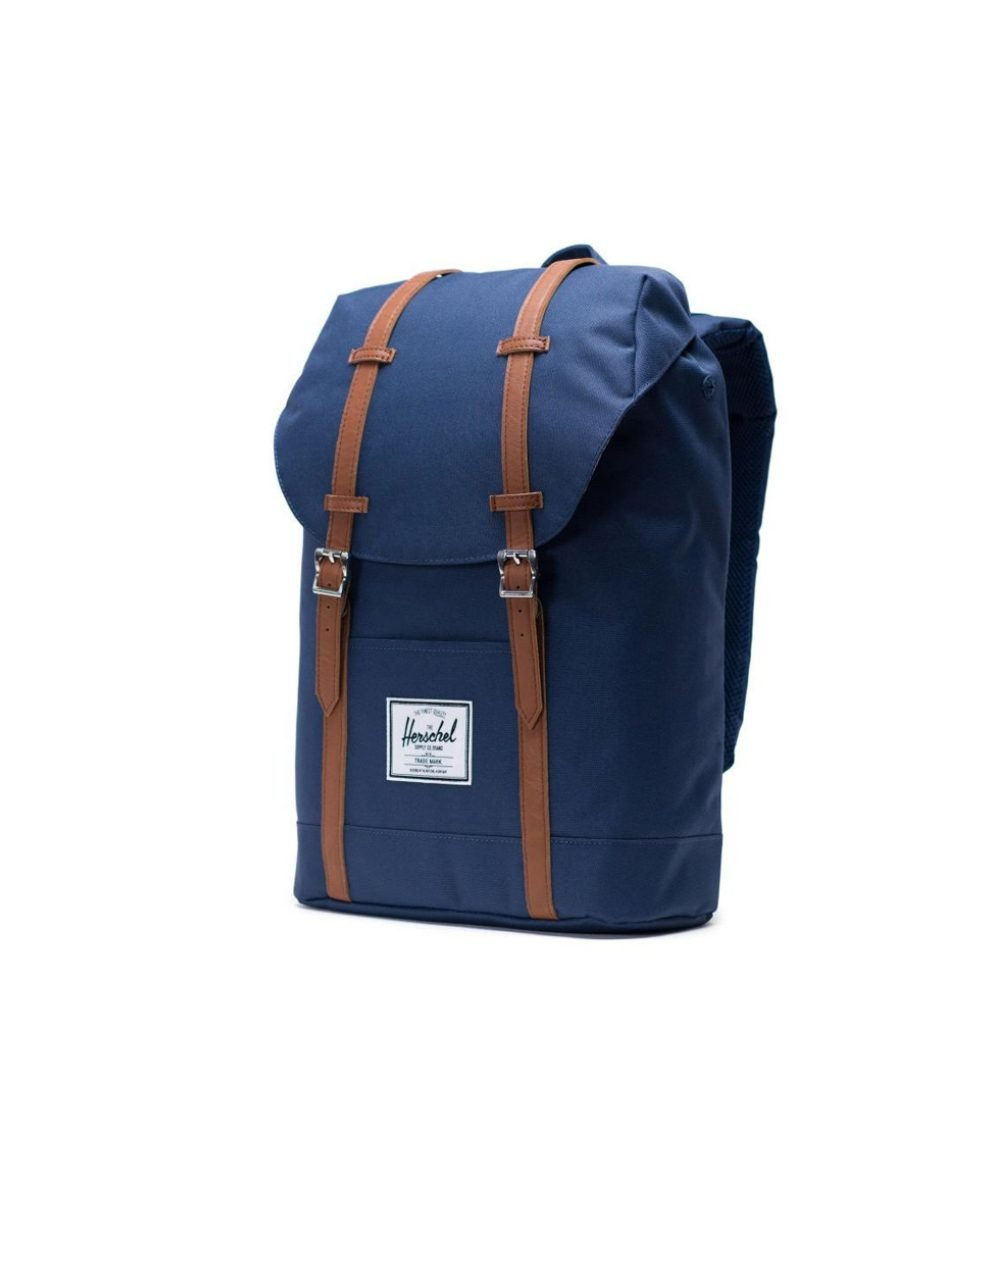 Herschel Supply Co Retreat 19.5L (10066-00007) Navy/Tan